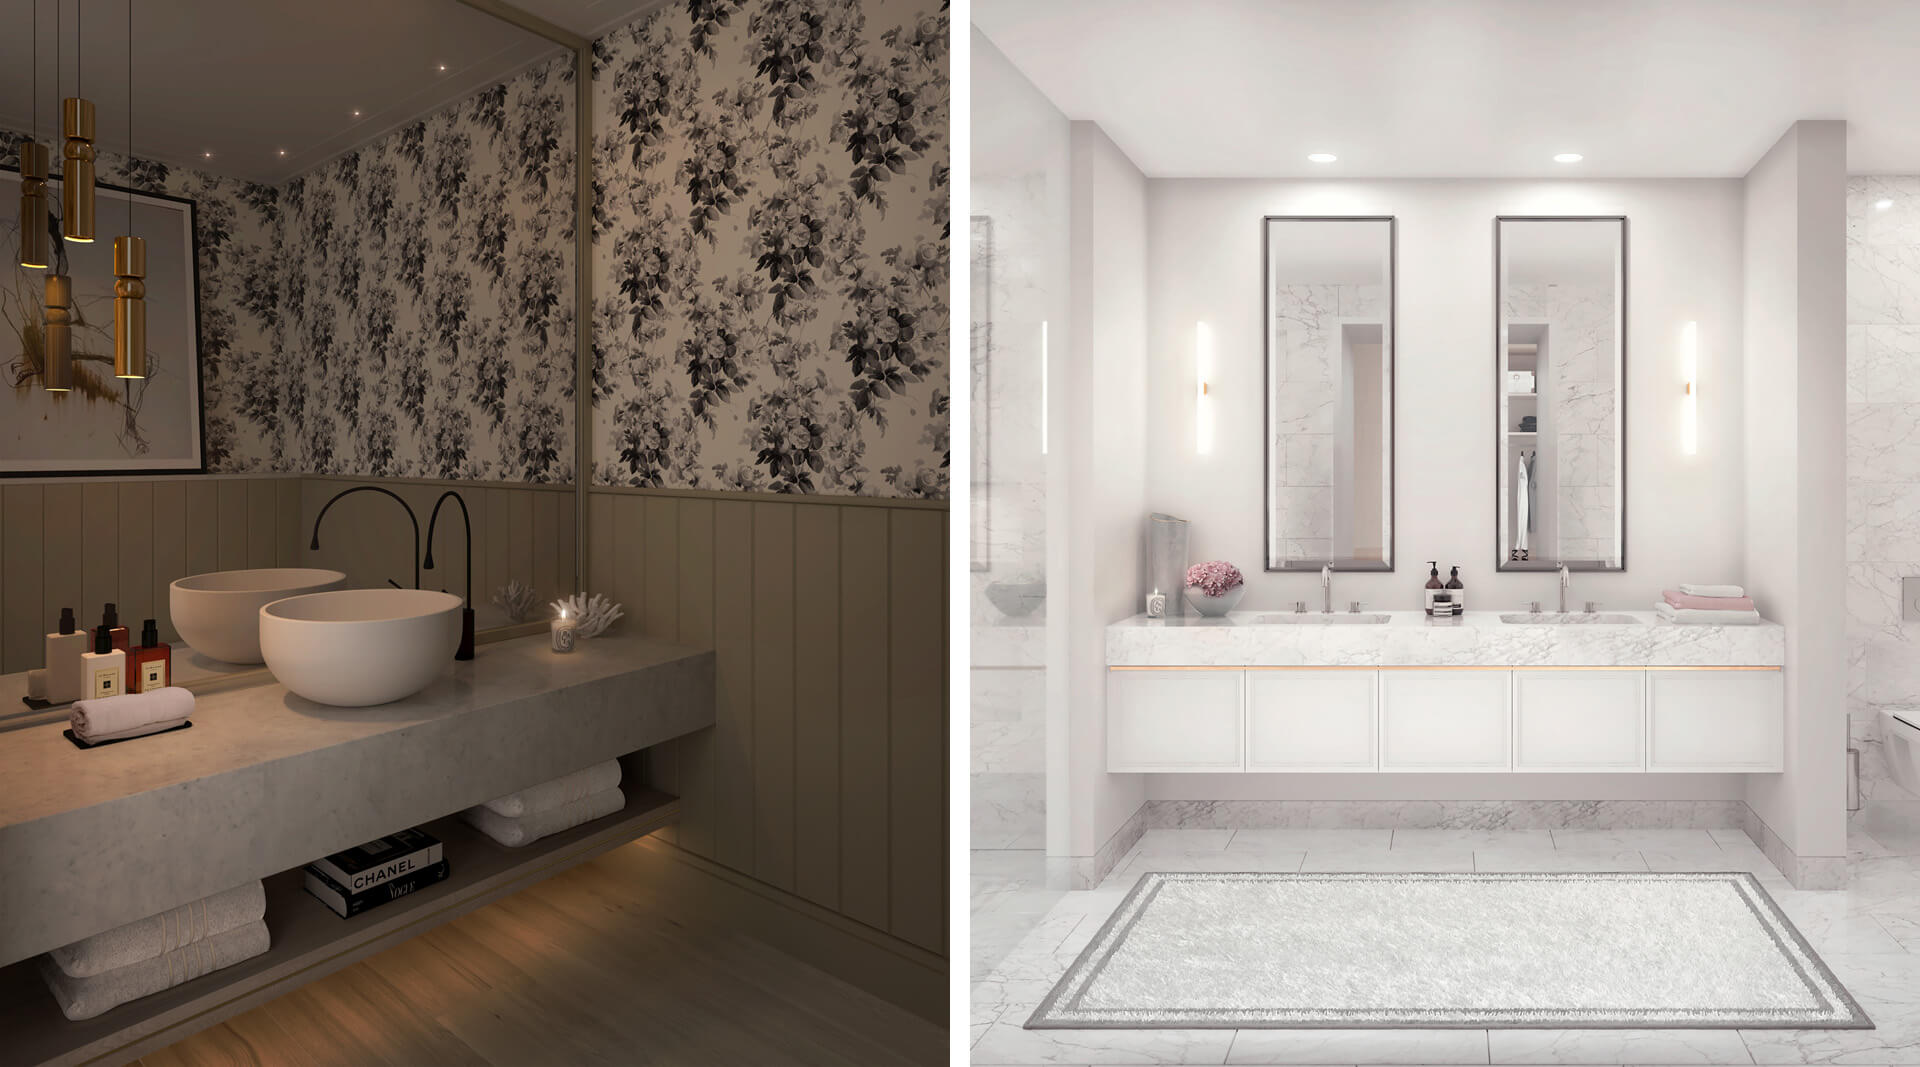 Bath and powder room CGIs for The Birchwood in Ealing